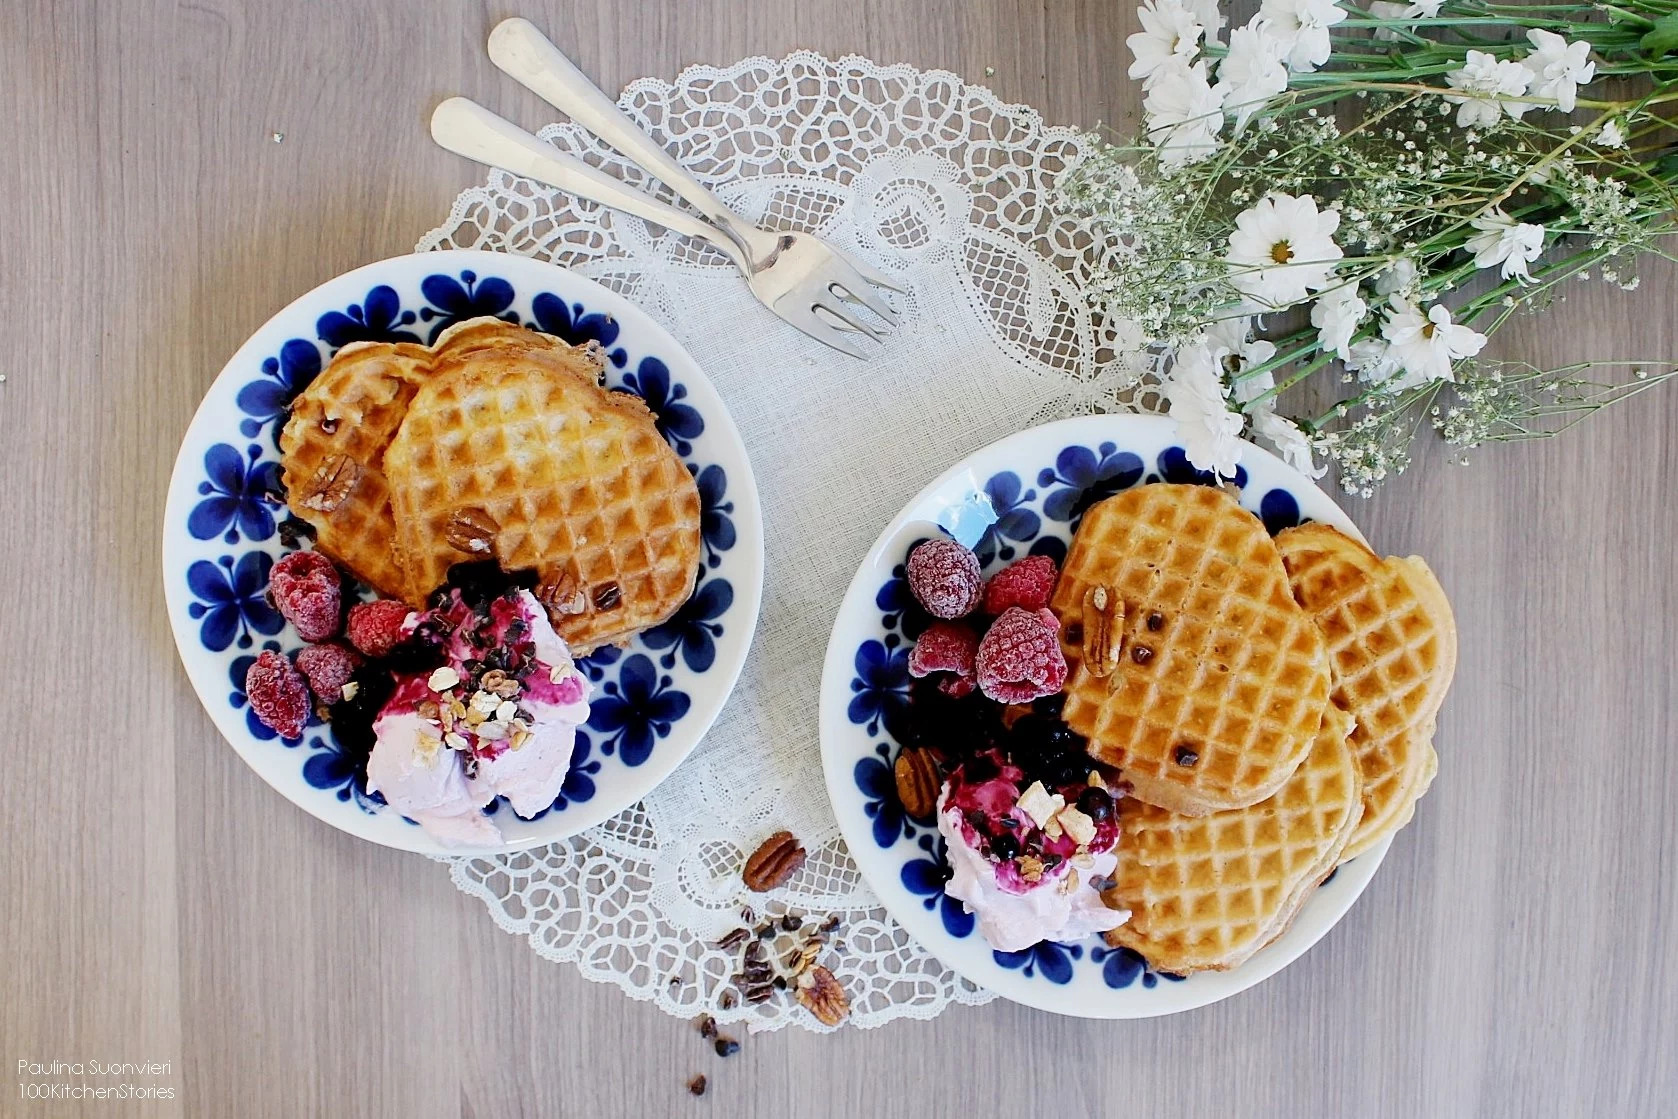 The Waffle Day // Glutenfree Proteinrich Waffles w Bluberry Sauce